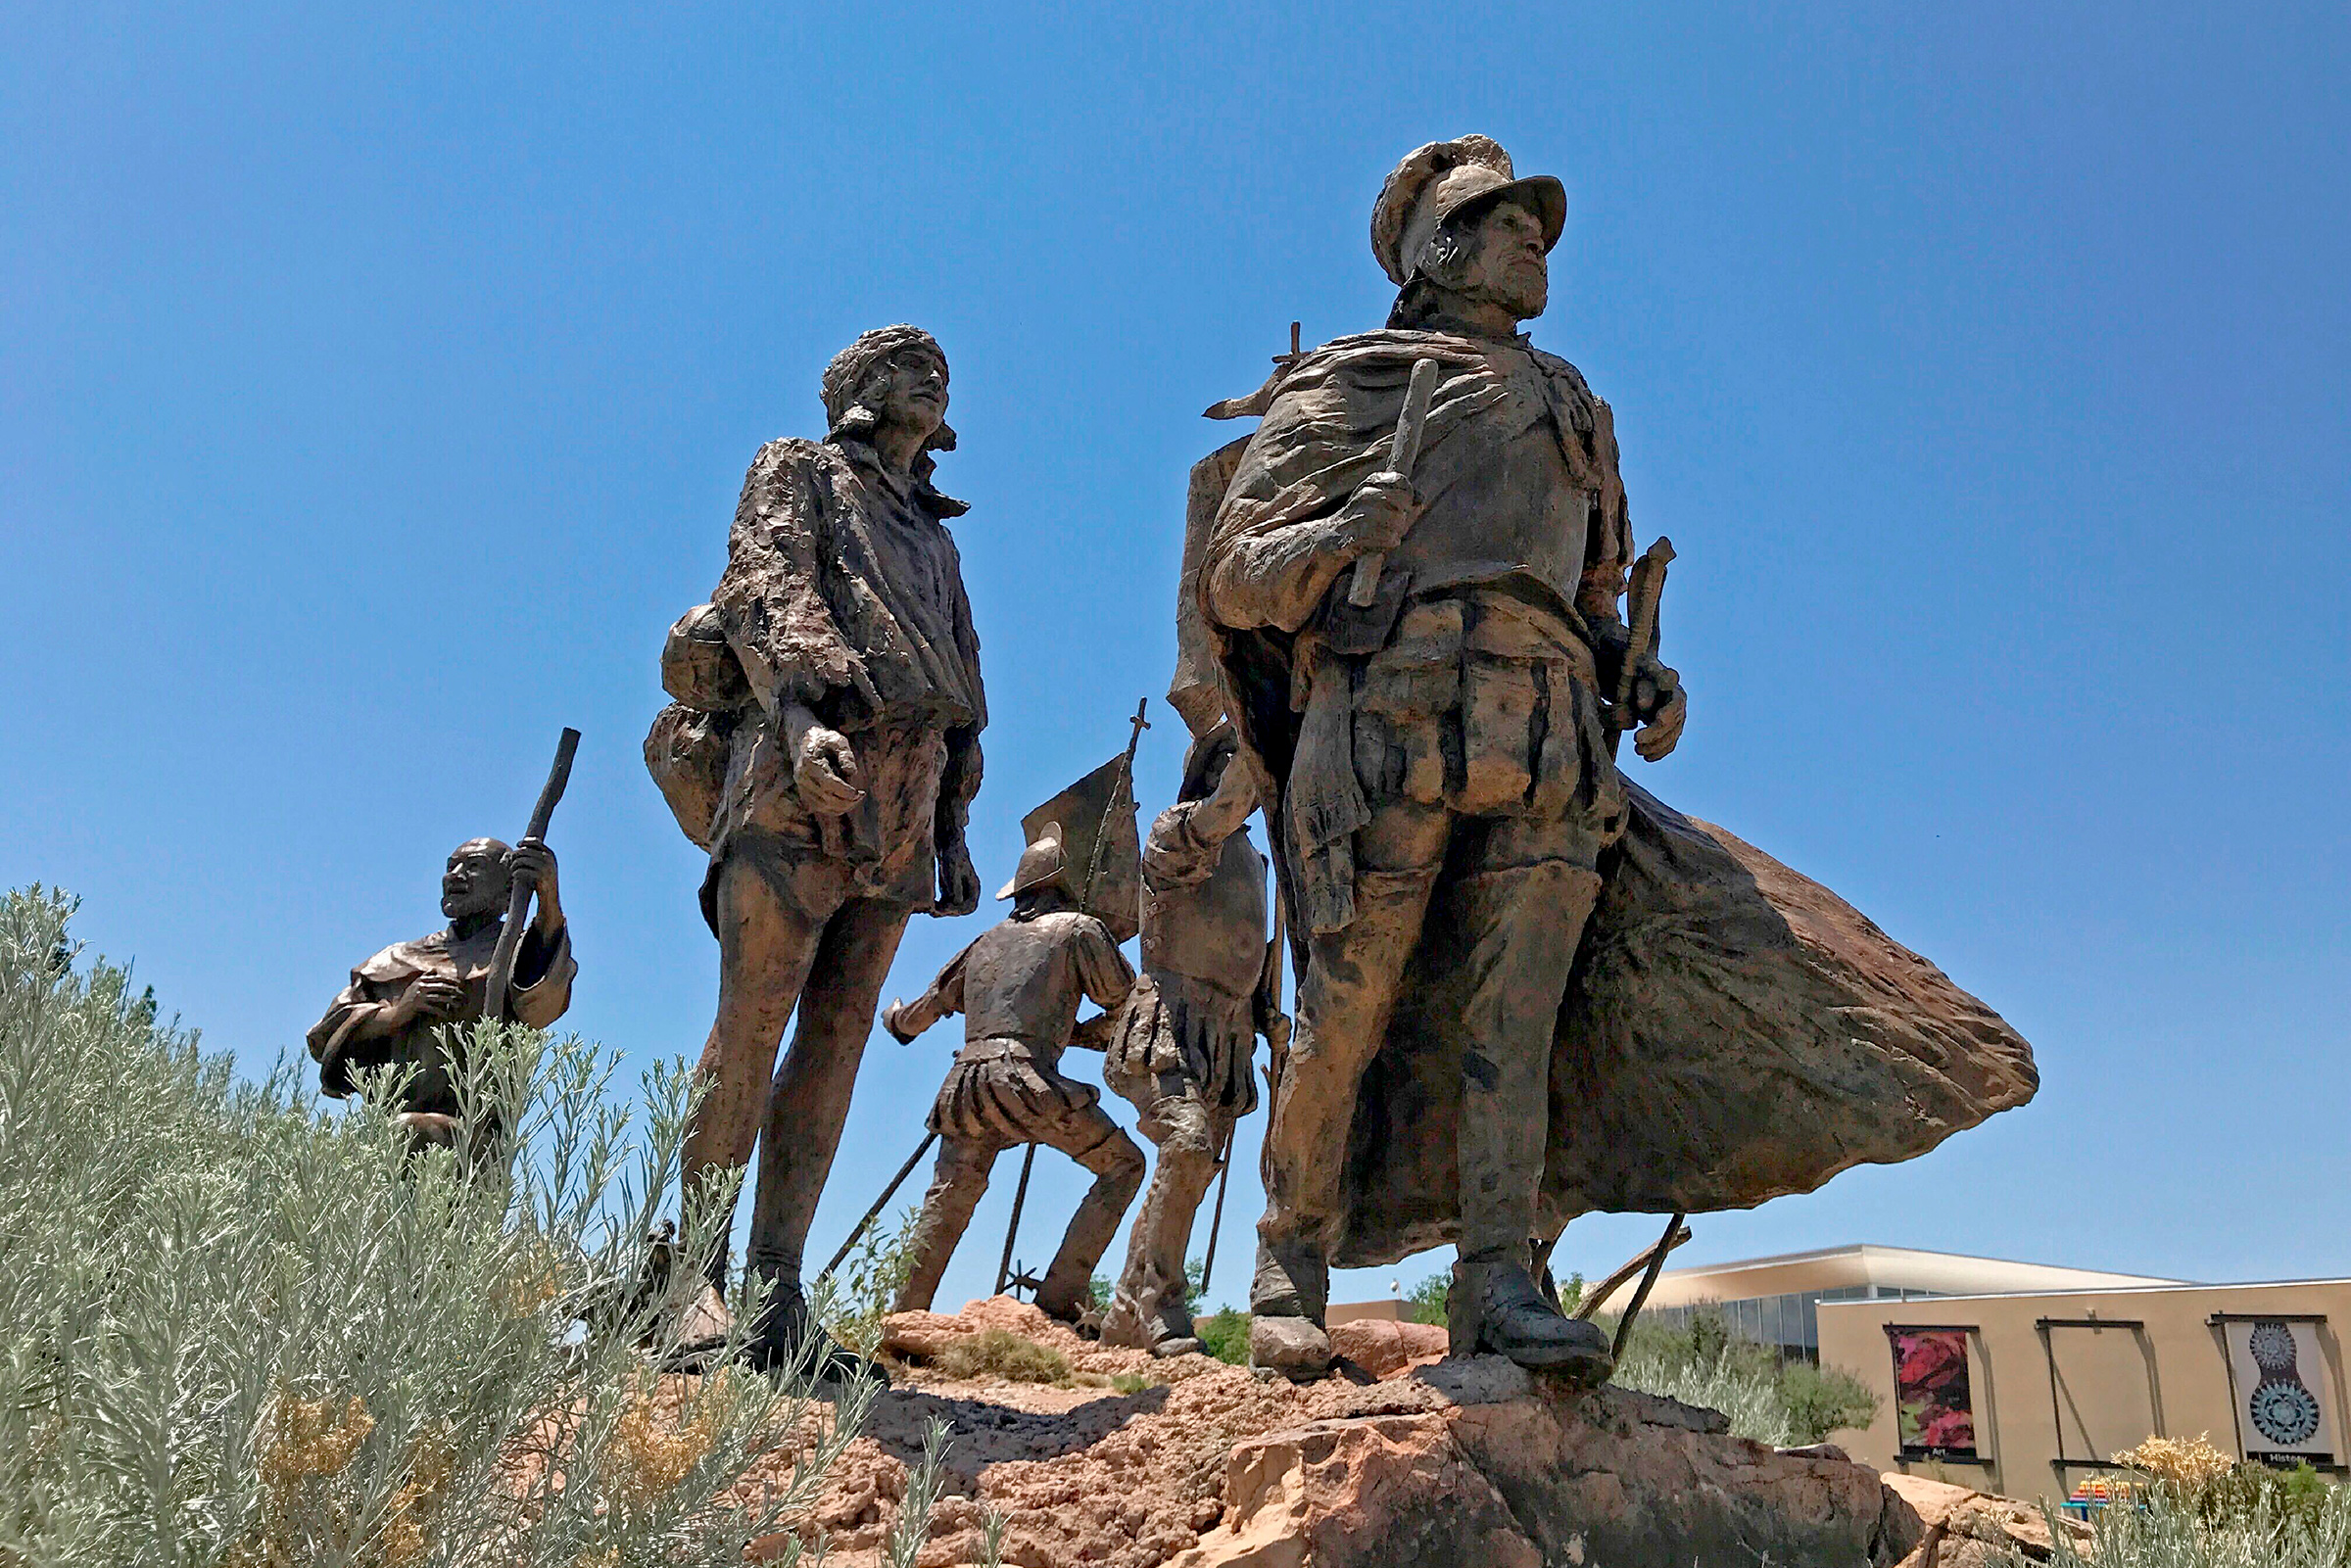 This bronze statue of Don Juan de Oñate leading a group of Spanish settlers stands outside the Albuquerque Museum in Albuquerque, N.M., on Friday, June 12